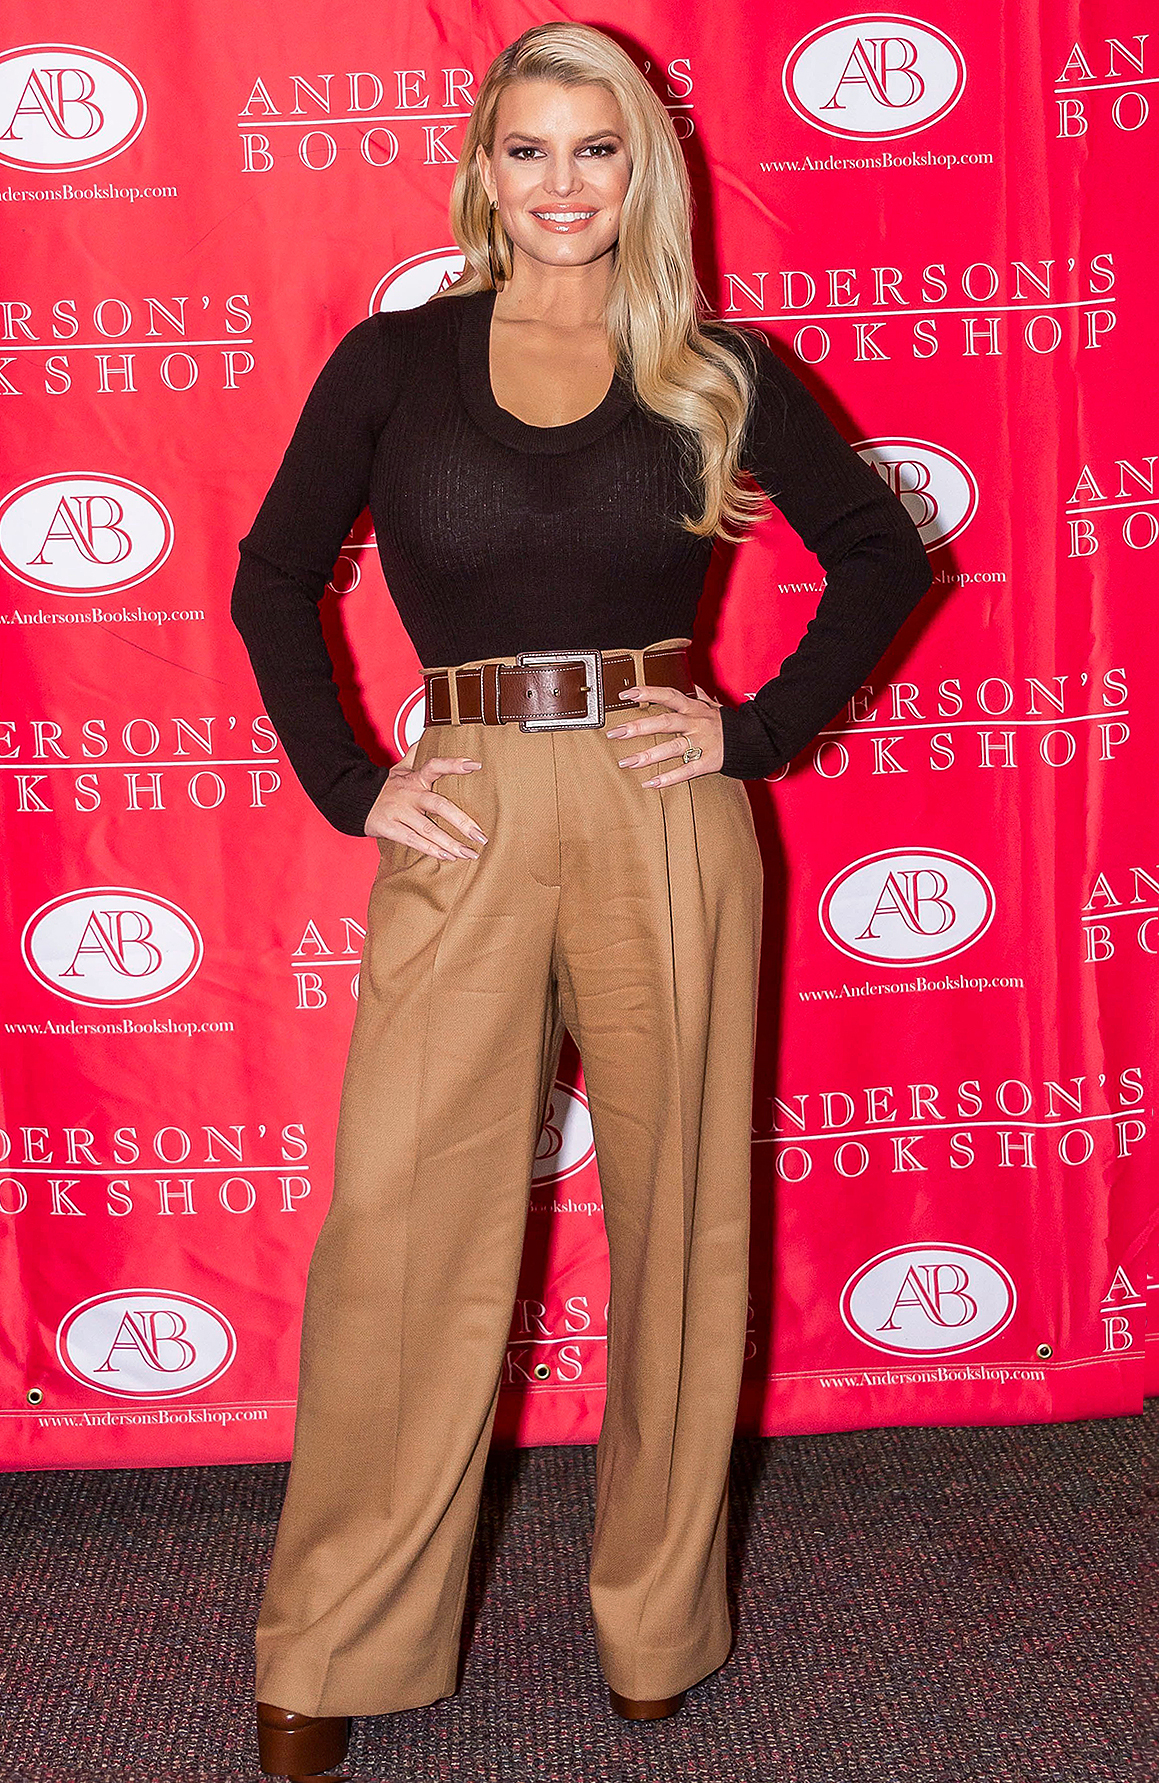 Jessica Simpson 'Open Book' photocall, Anderson's Bookshop, Naperville, USA - 12 Feb 2020